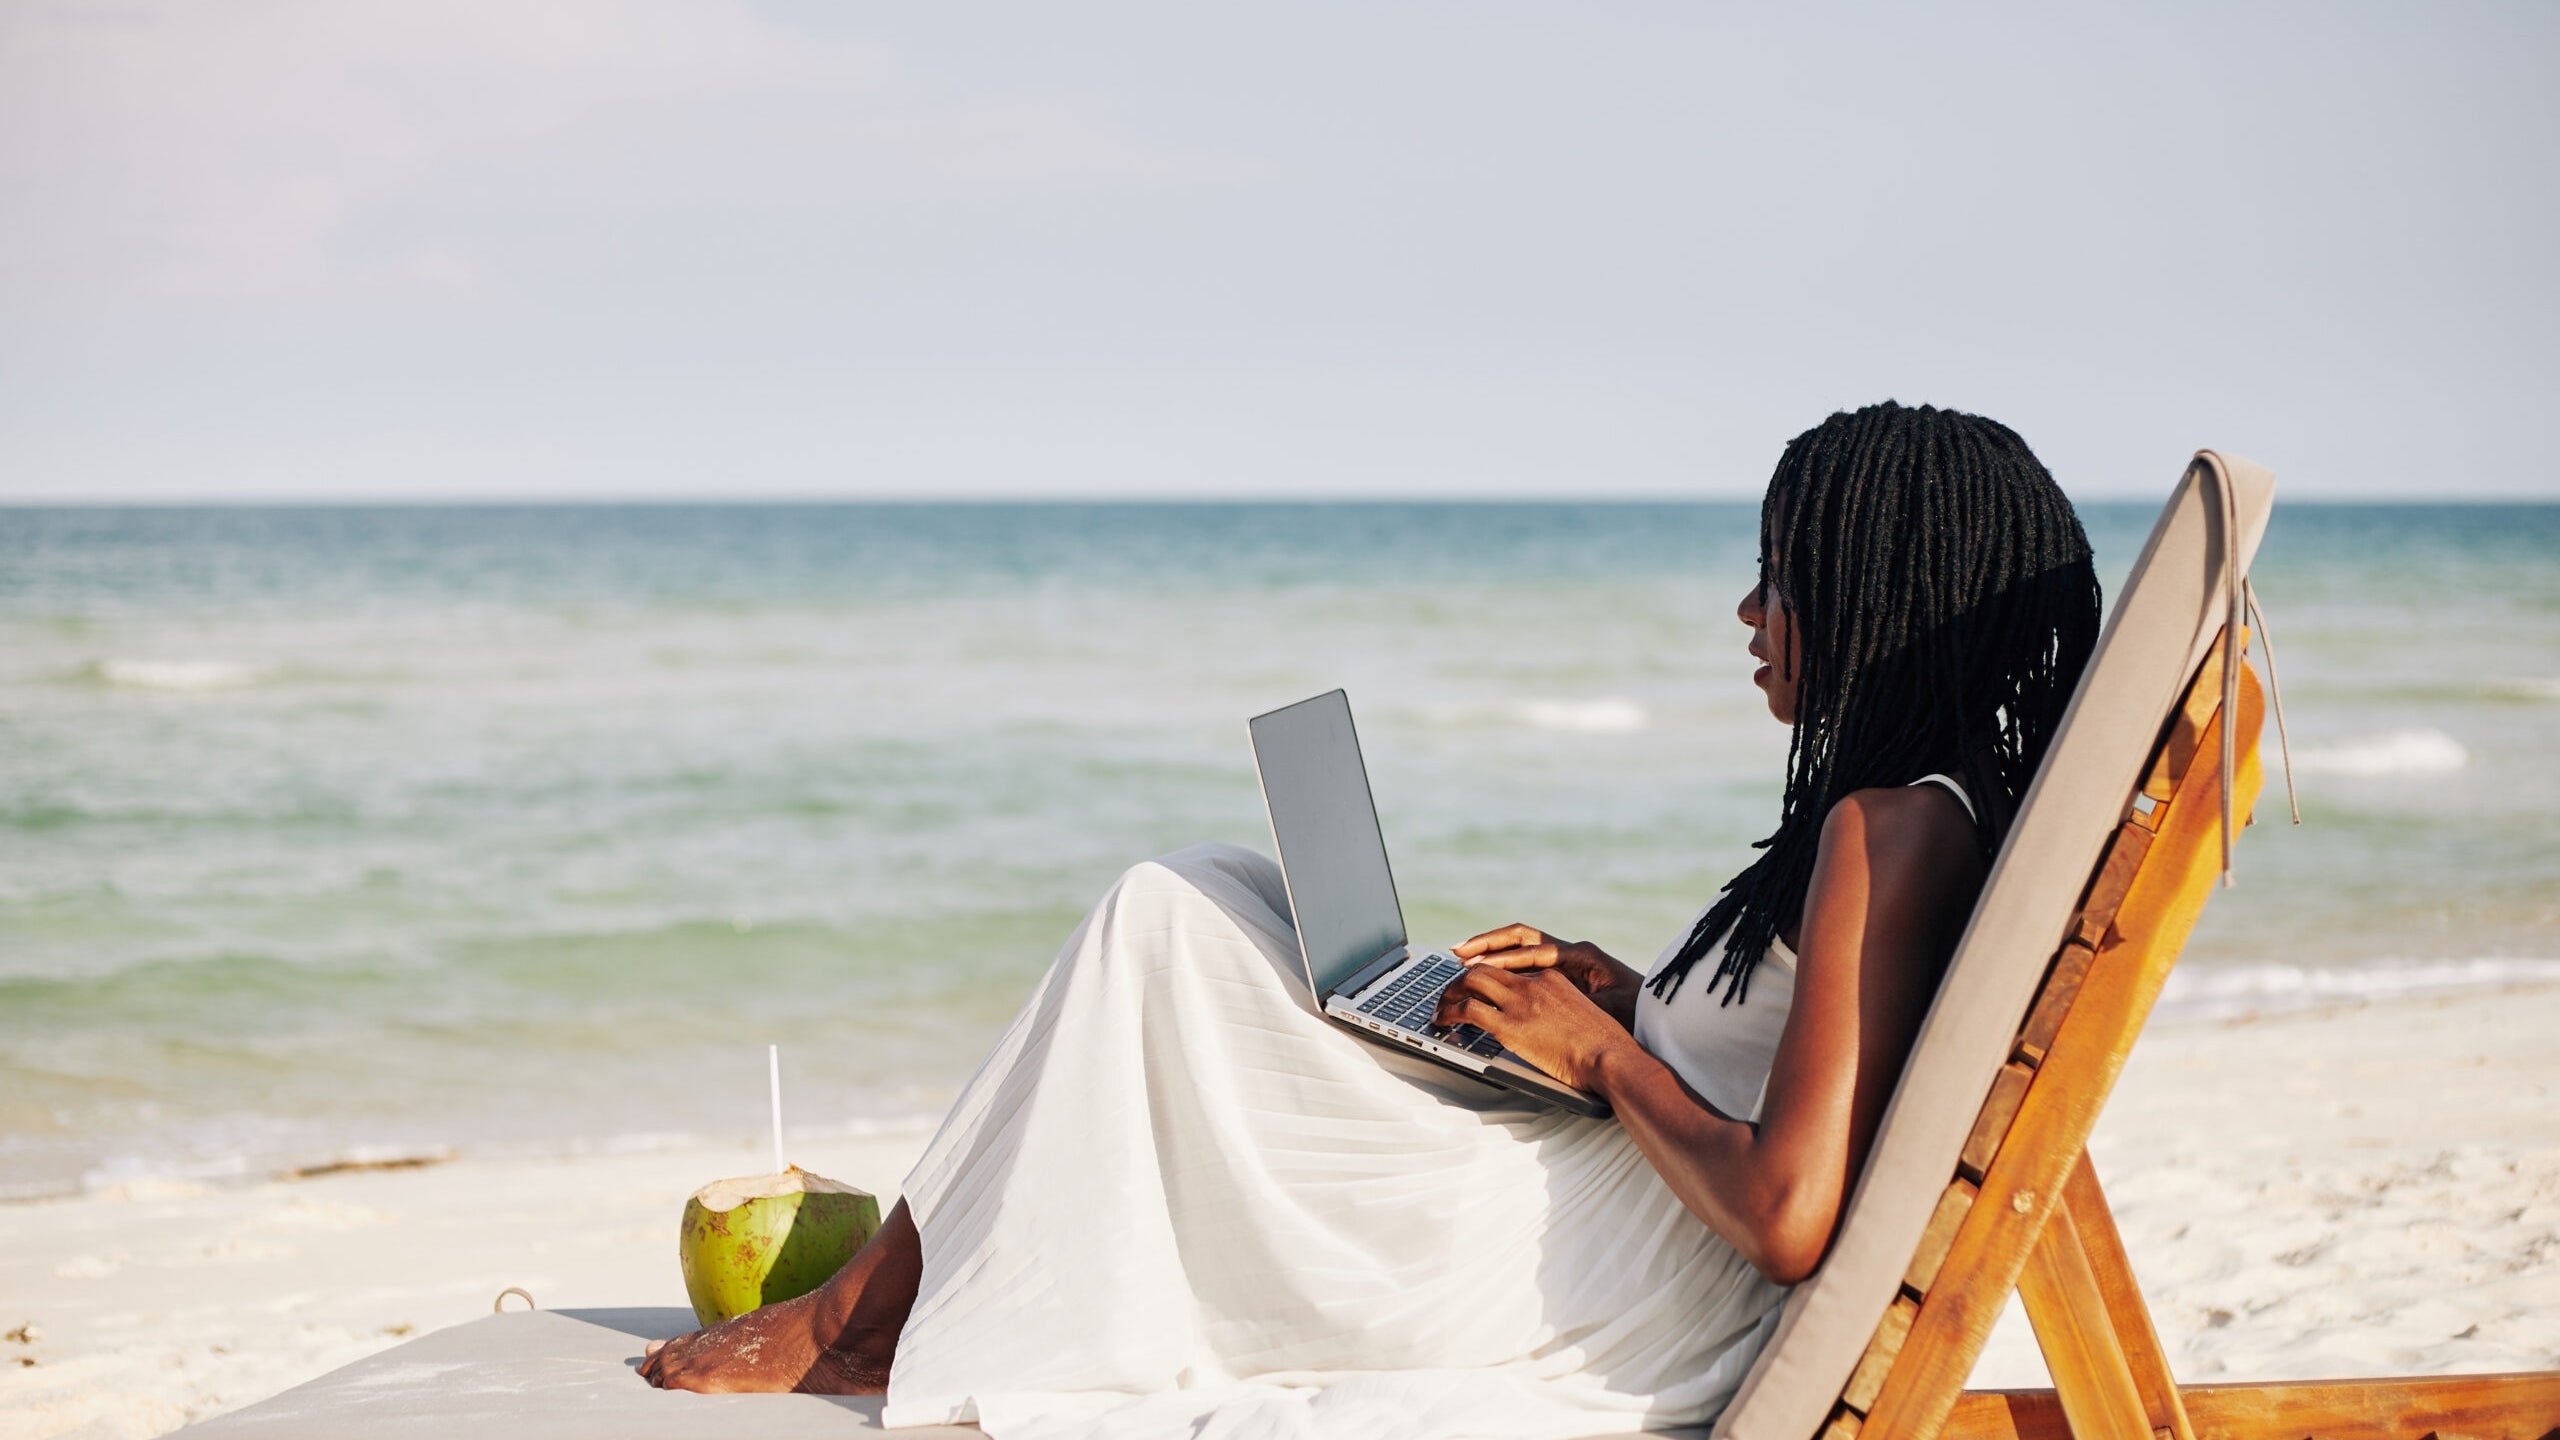 Want To Become A Digital Nomad? This Is Where You Should Go